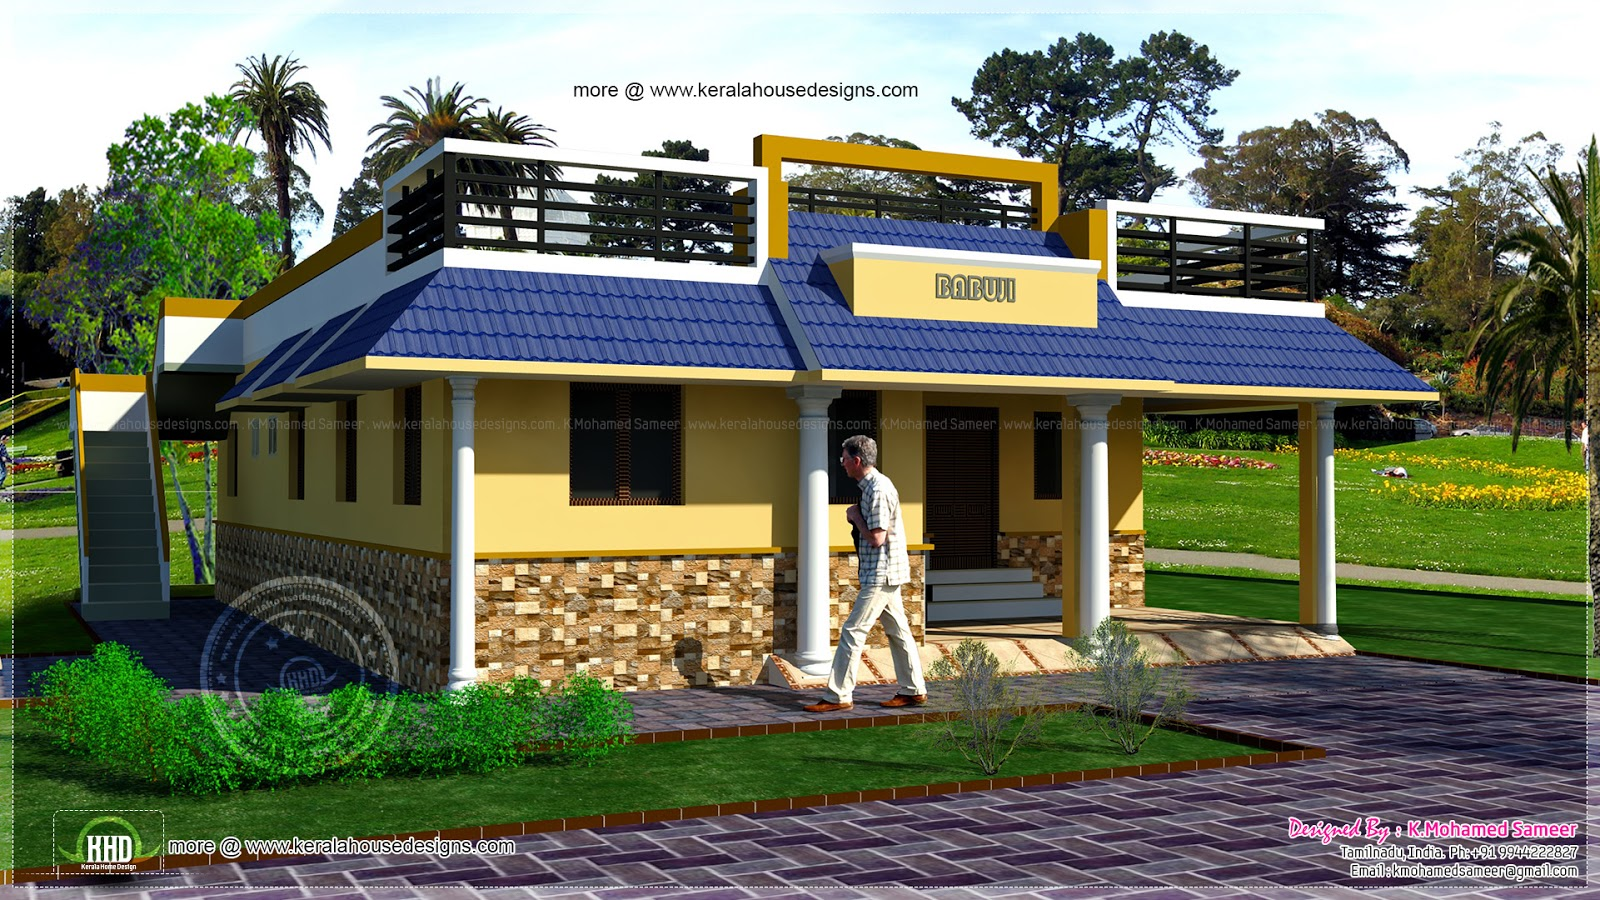 3 Bedroom Single Floor House Plan Kerala Home Design And